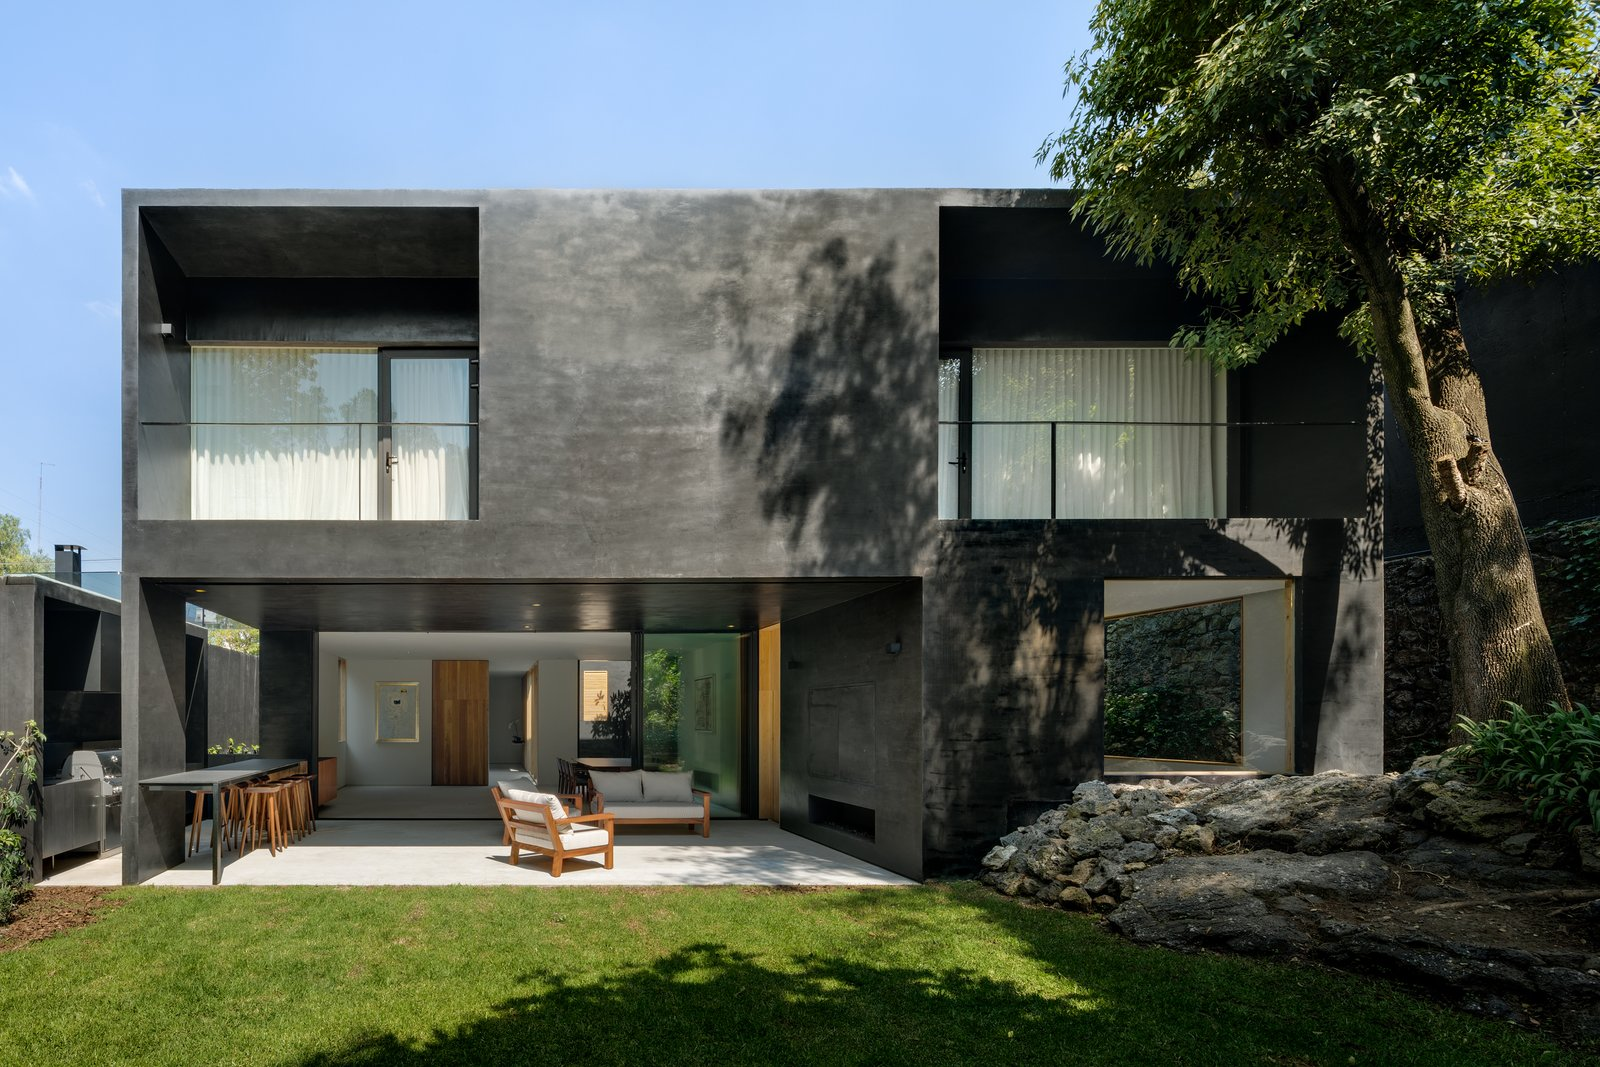 The home embraces its green surroundings with outdoor terraces, open living spaces, and large windows.